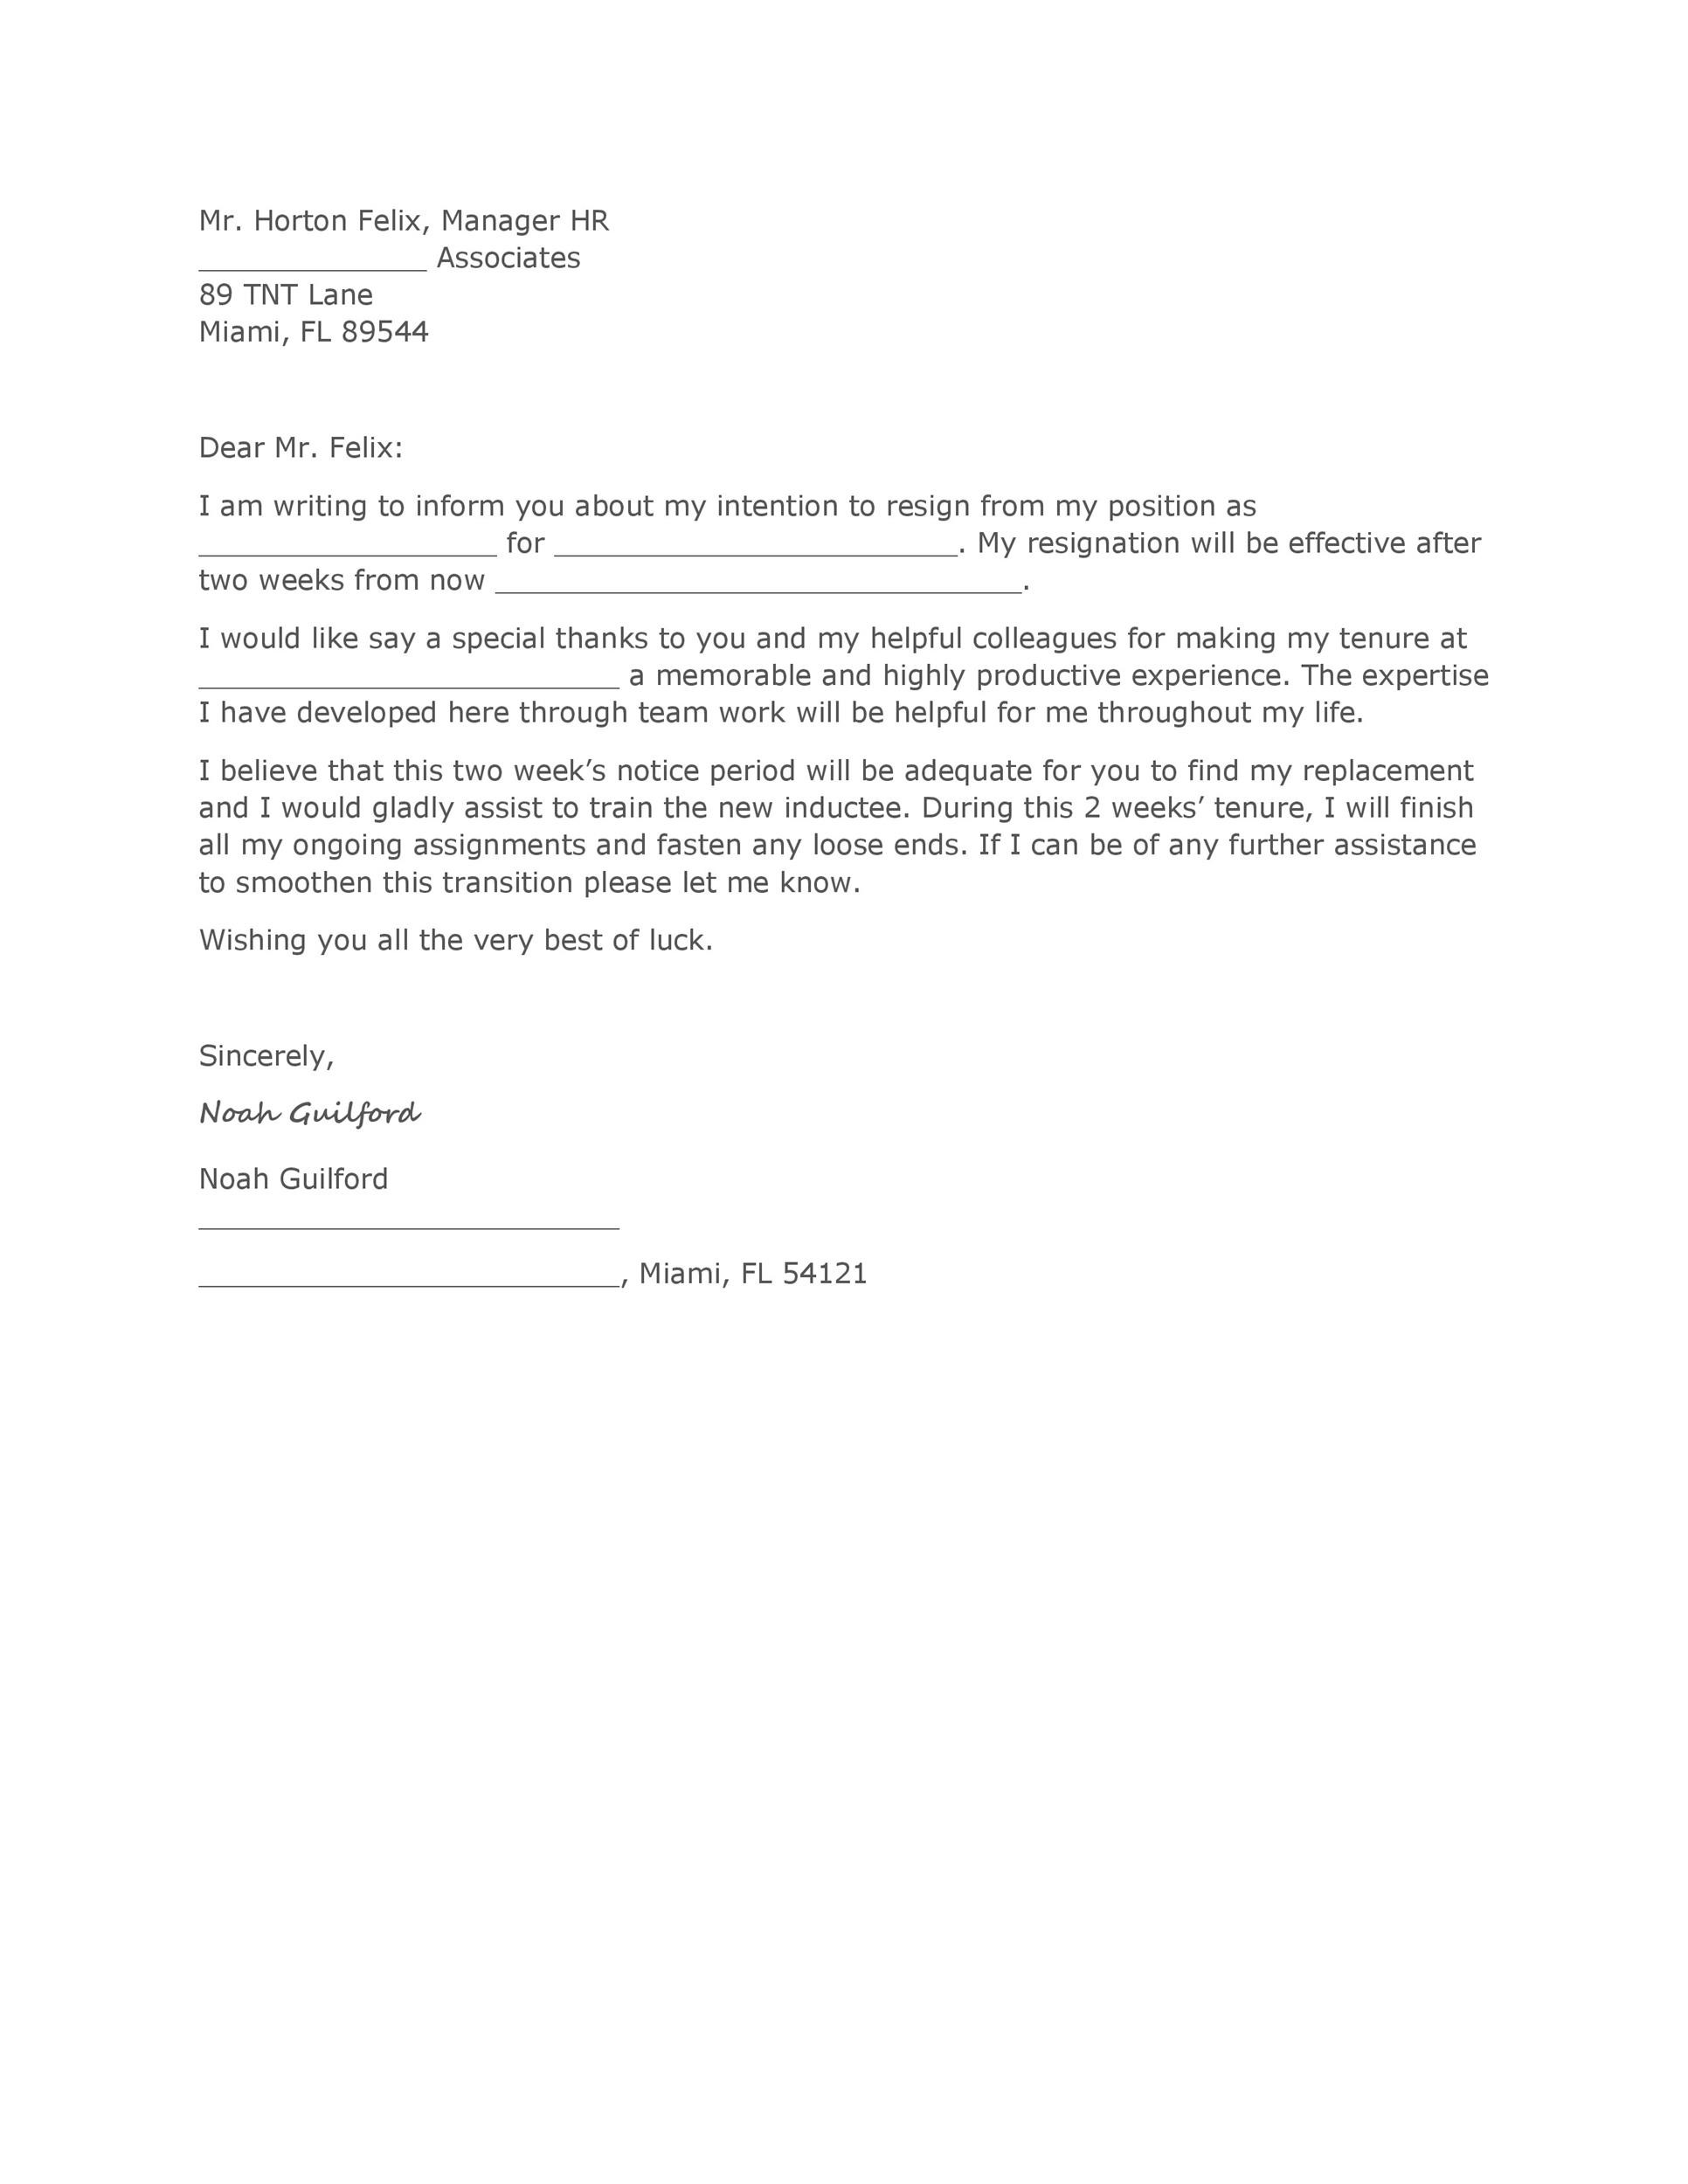 40 Two Weeks Notice Letters  Resignation Letter Templates - two week resignation letter sample